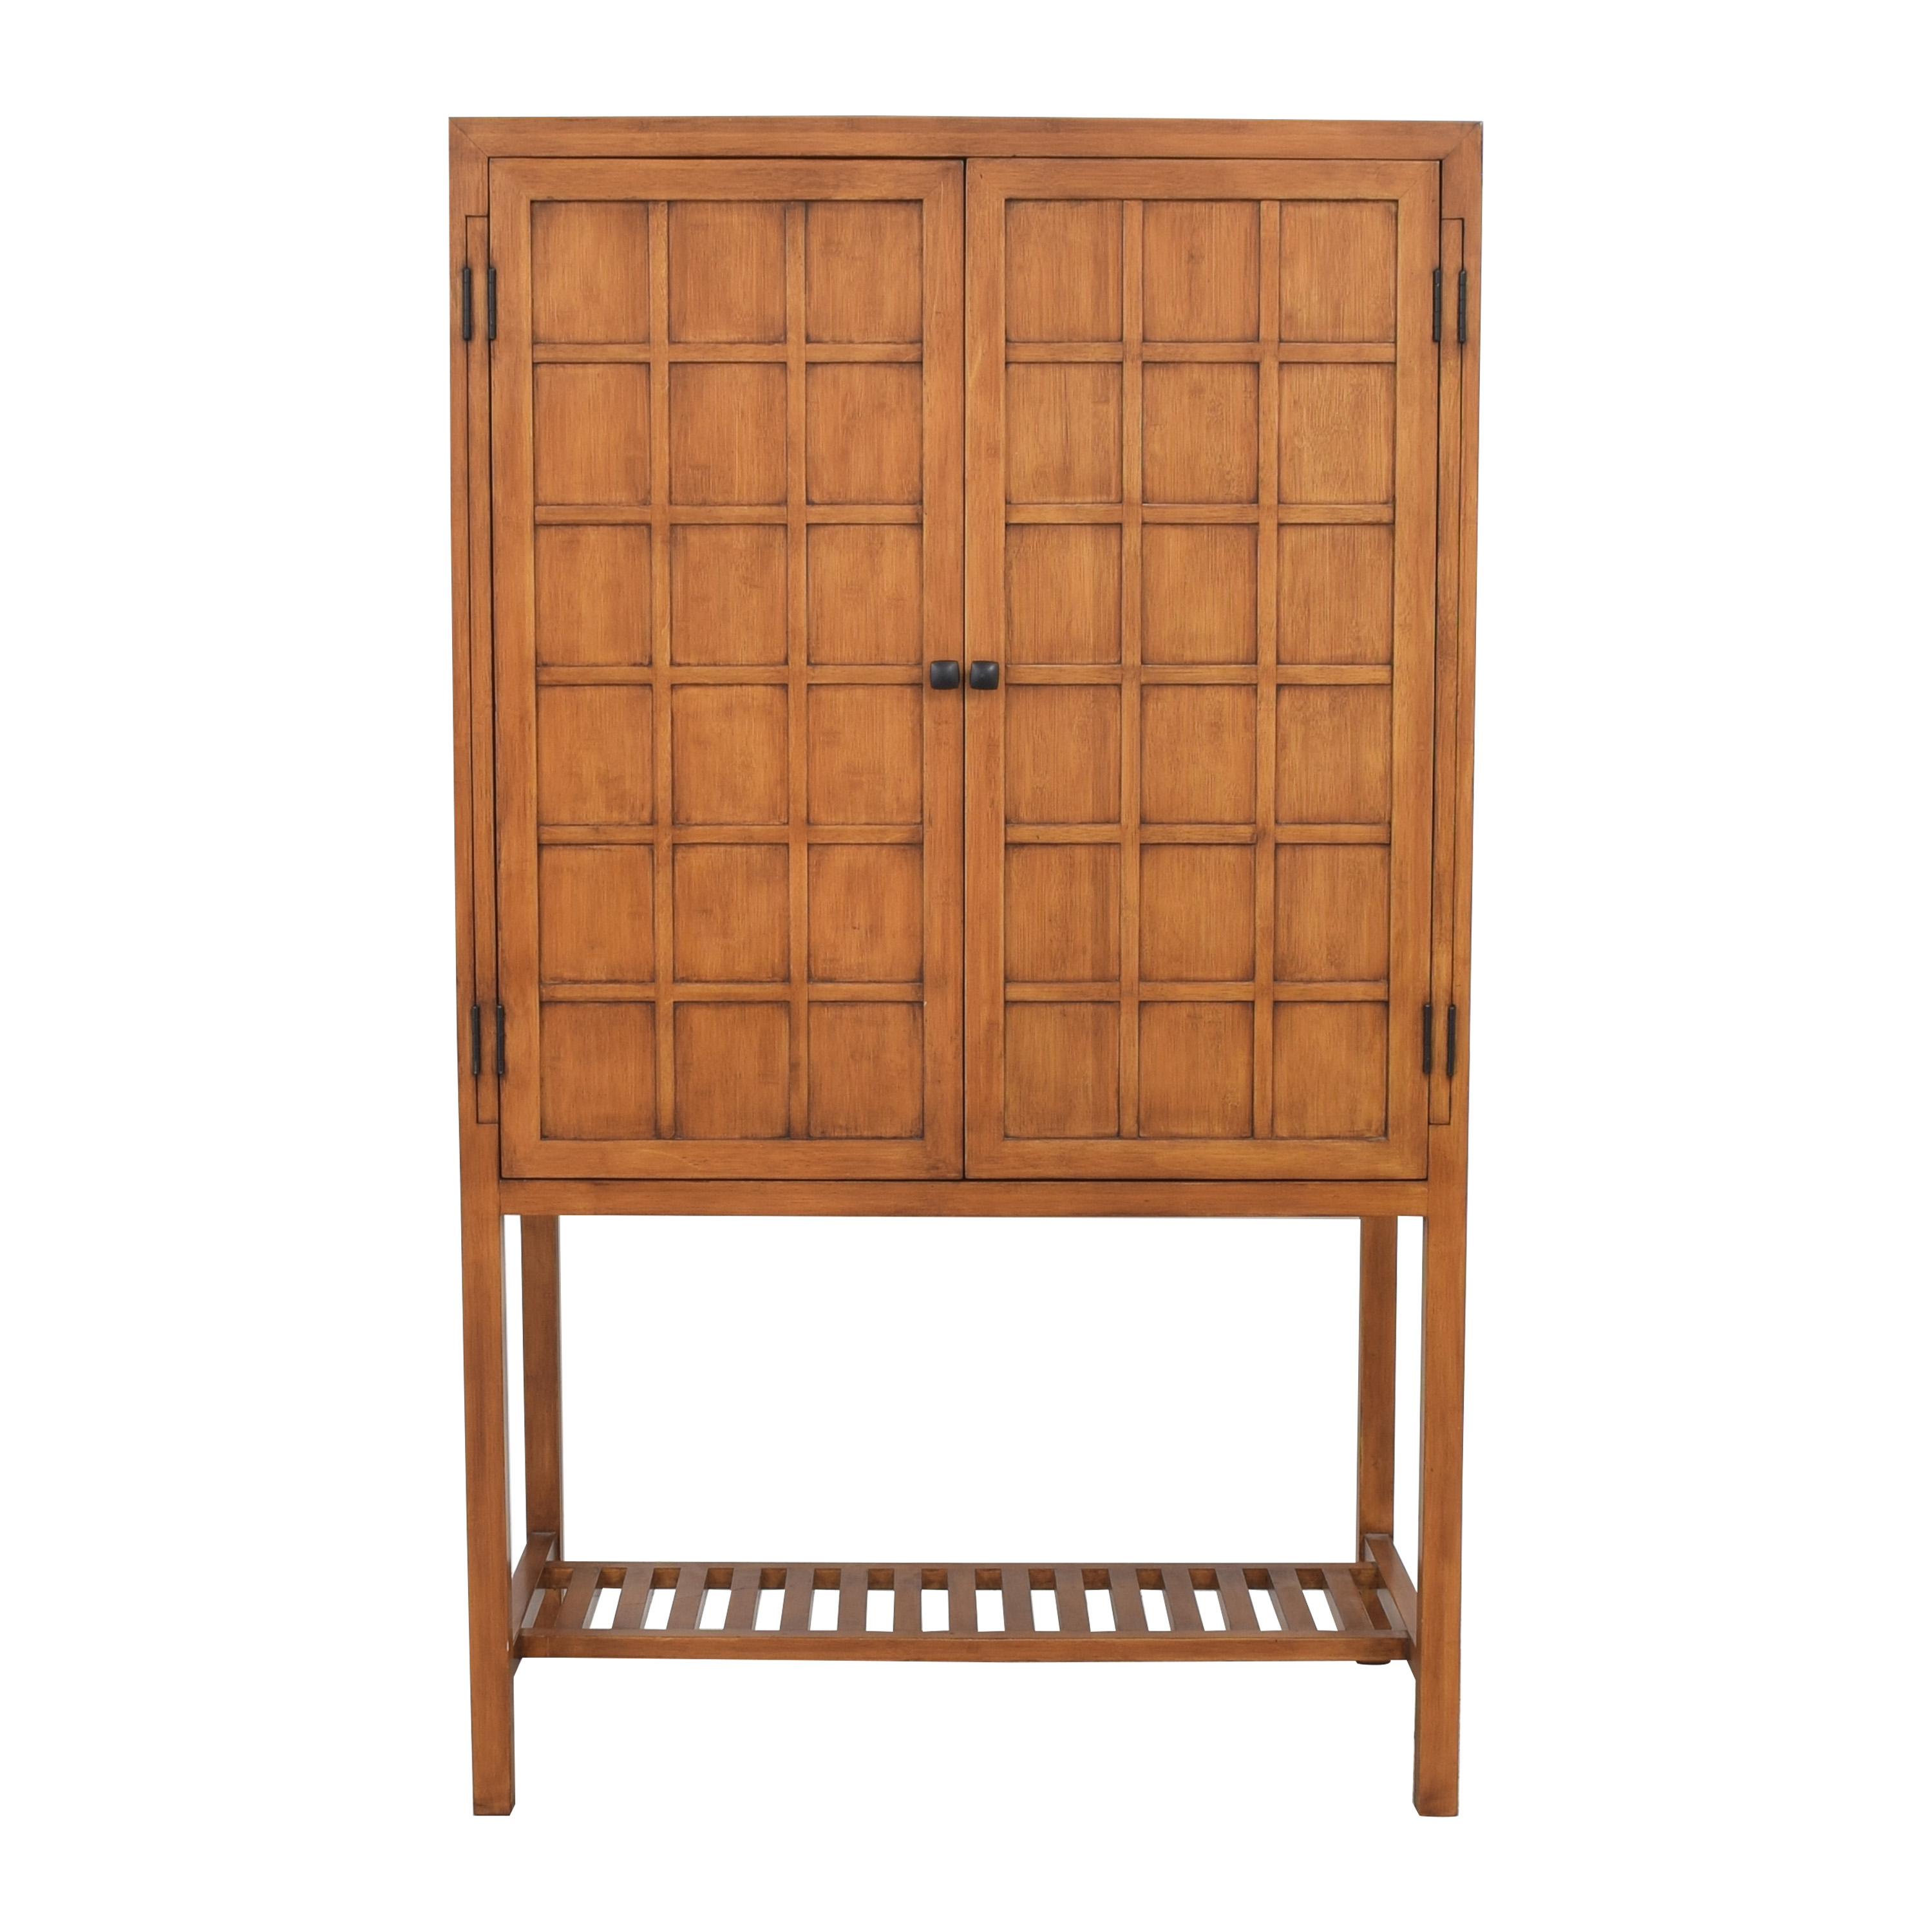 Crate & Barrel Crate & Barrel by Maria Yee Bamboo Timbre Console nj